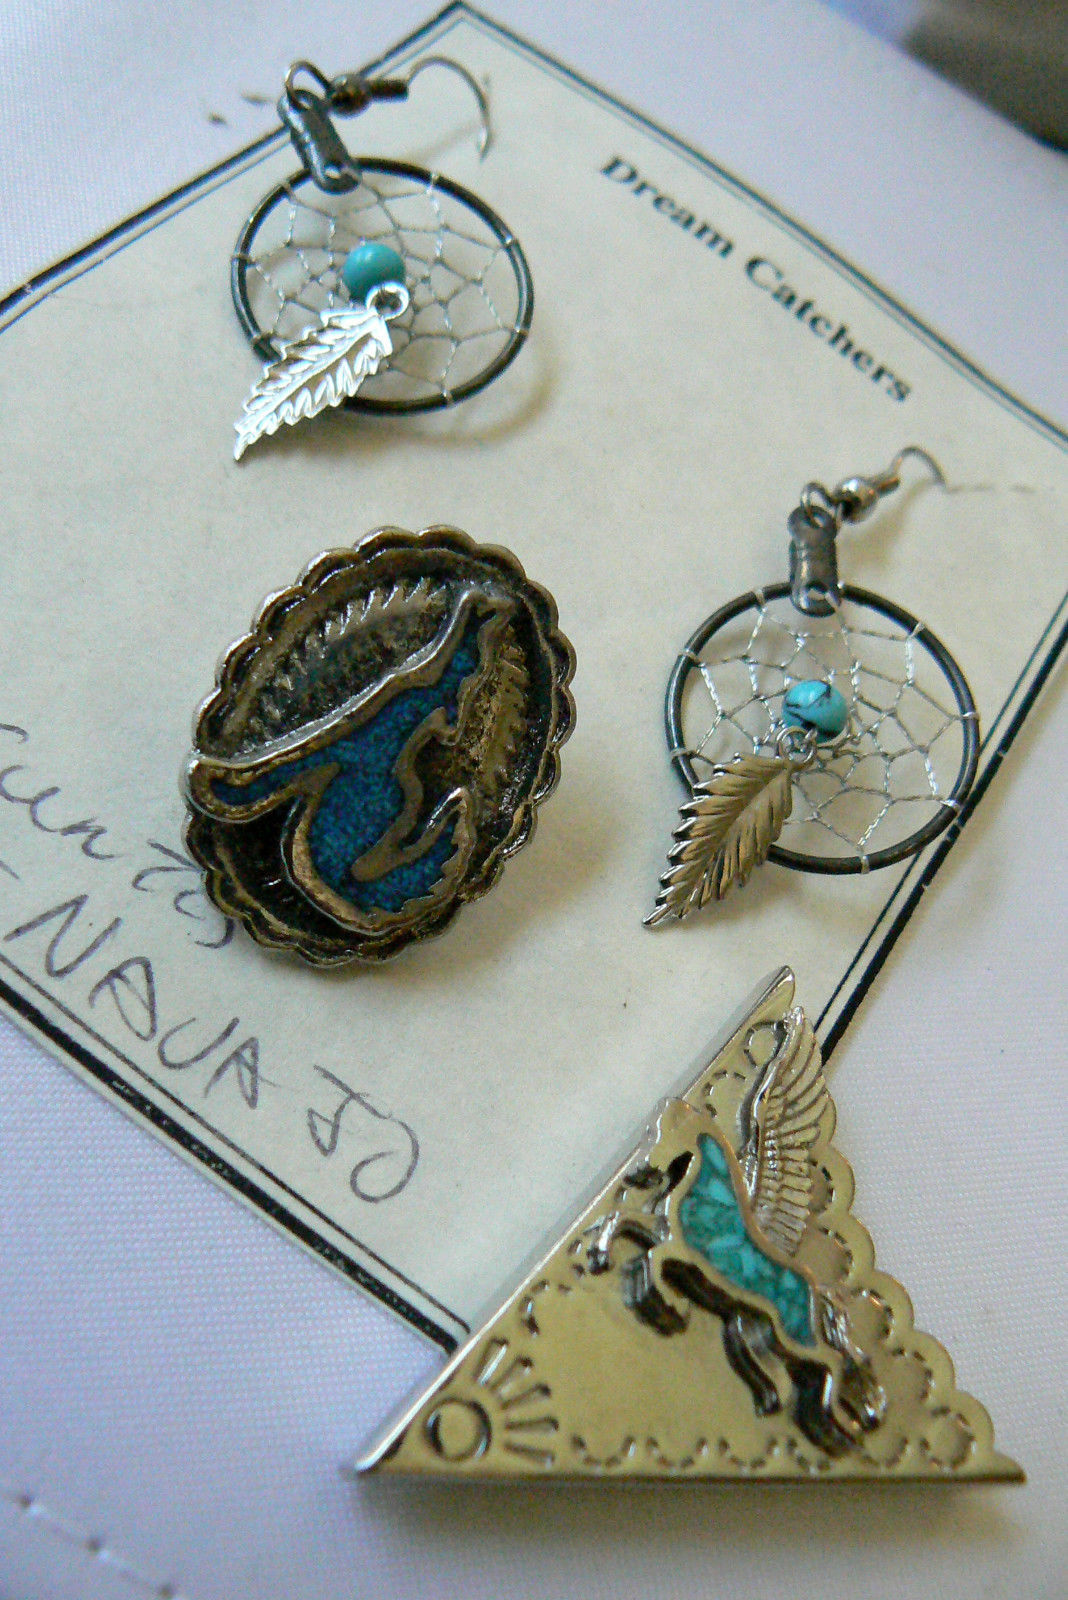 Primary image for Hndcrafted silvertone Crushed Turquoise Dream catcher earrings belt tip tack lot